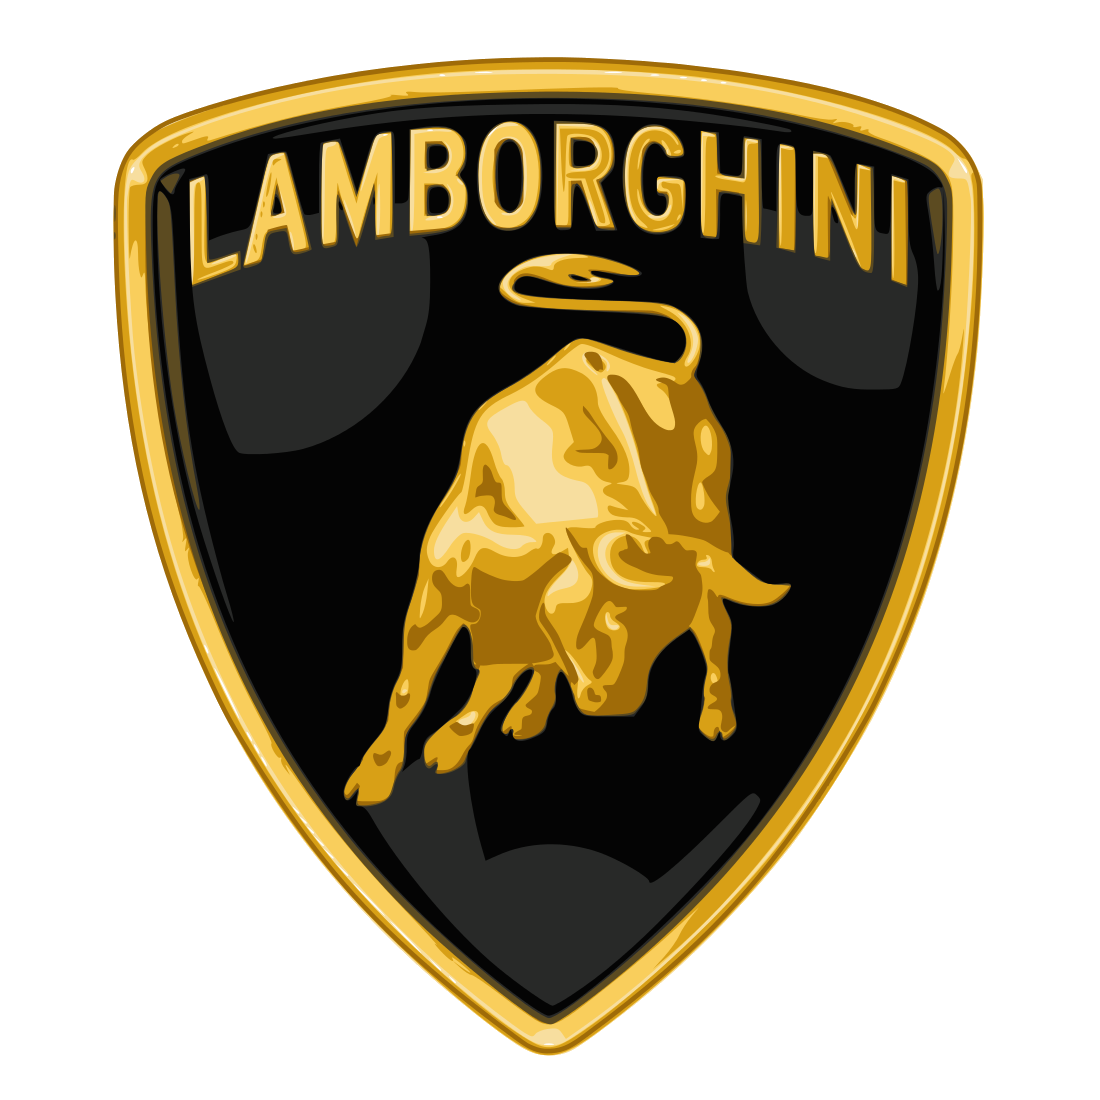 Image result for lamborghini logo